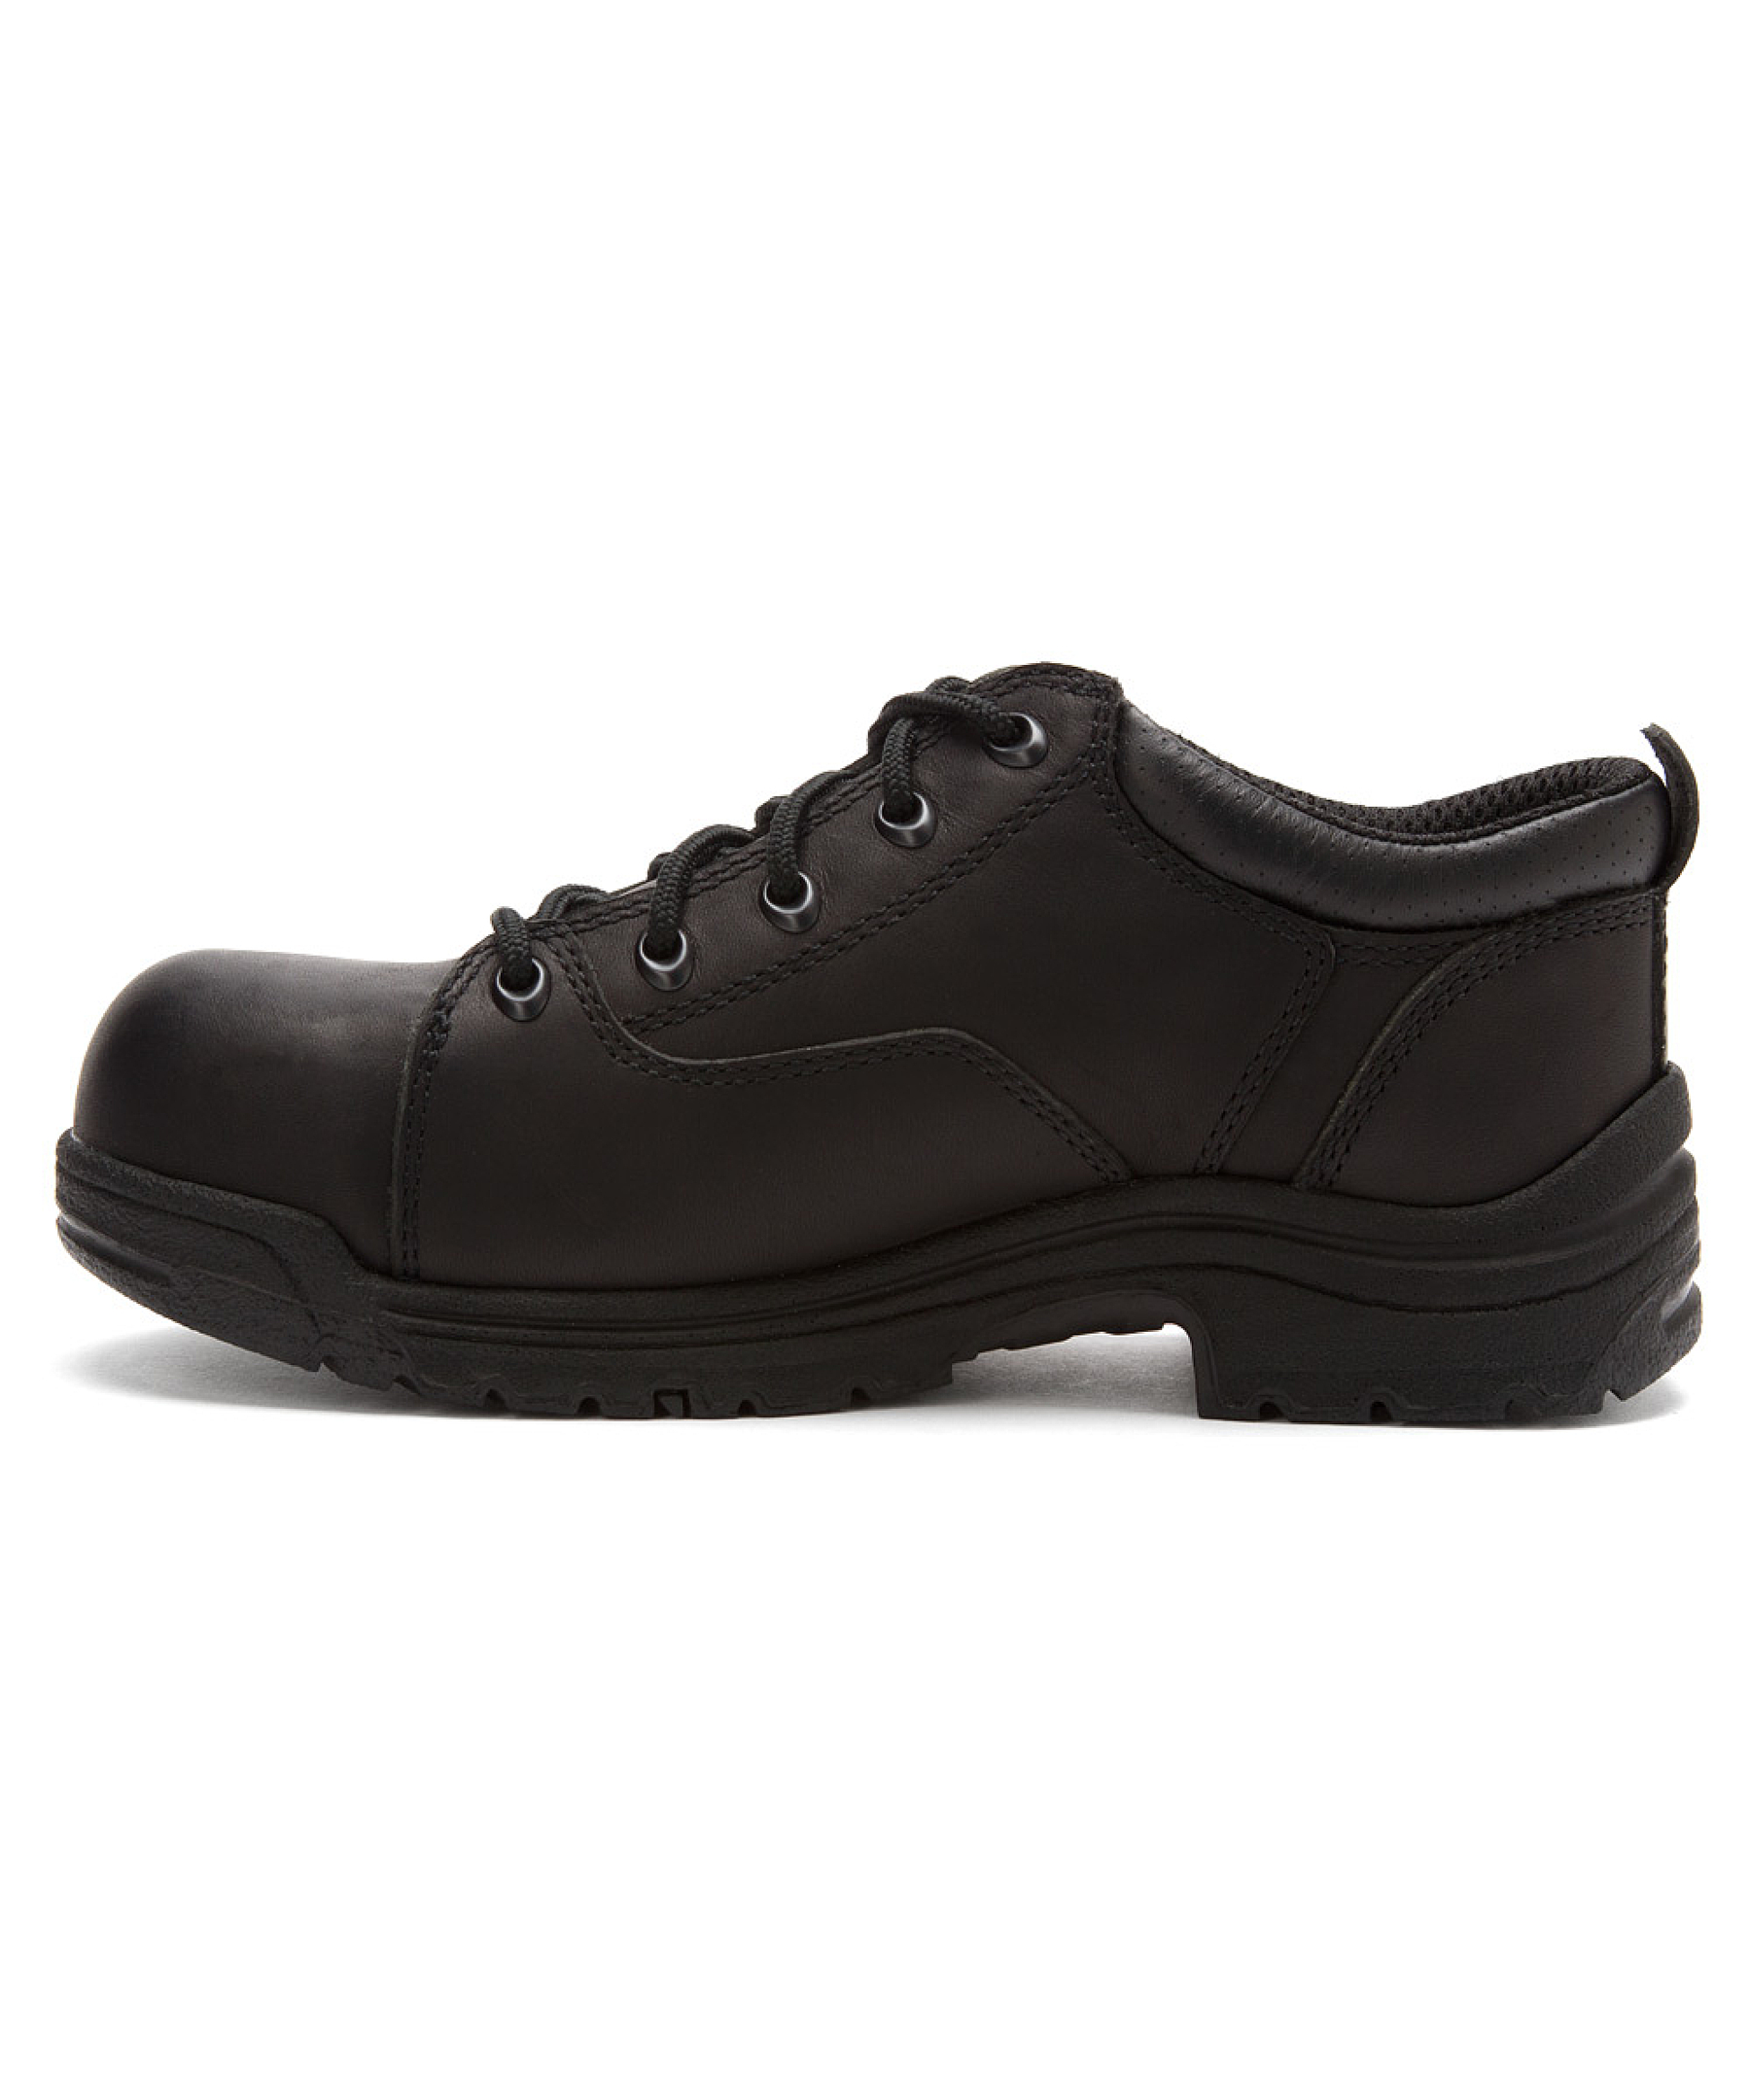 Timberland Womenu0026#39;s Pro-titanu00e2u00ae Safety Toe Oxford Work Shoes In Brown | Lyst